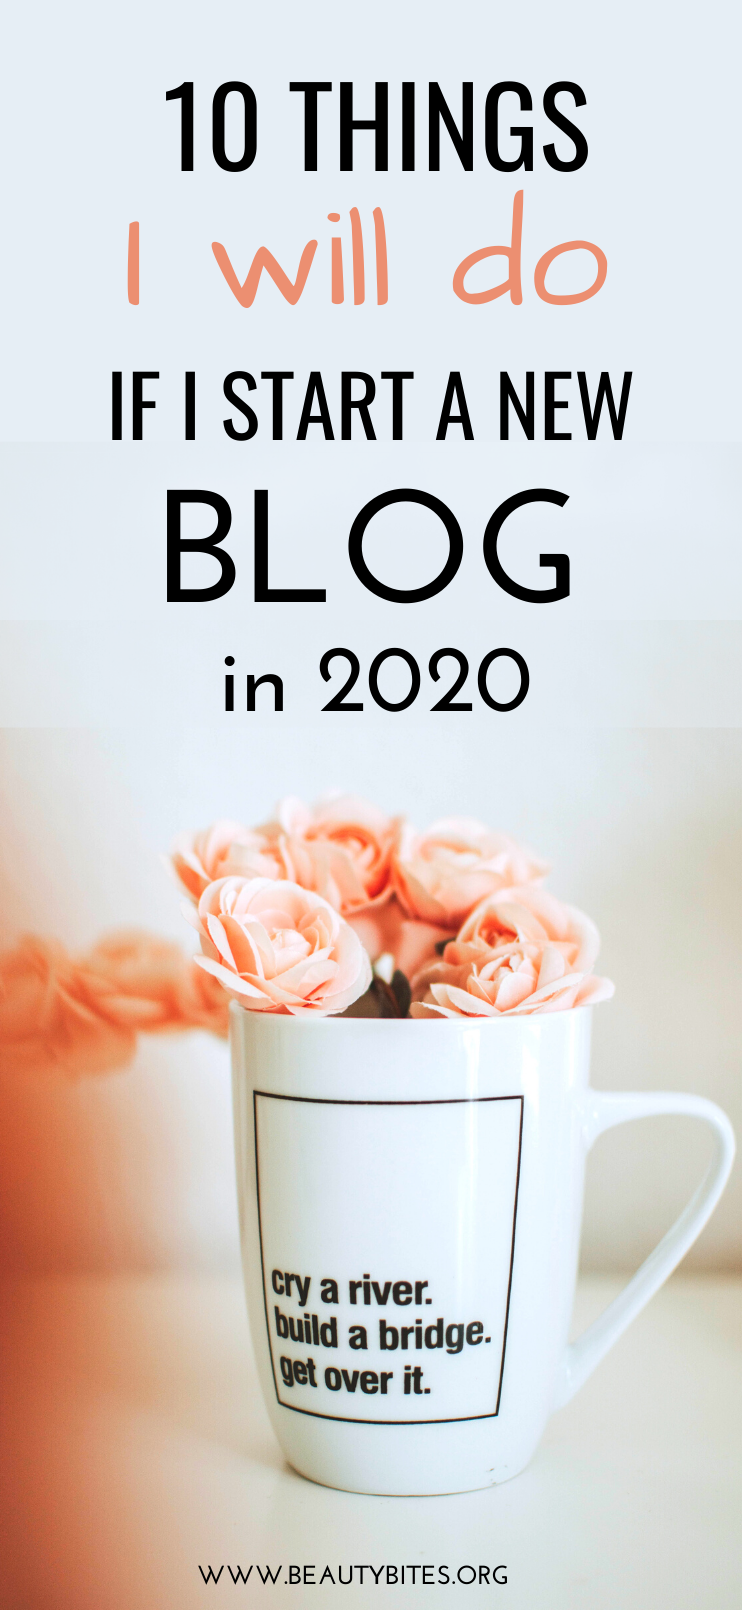 Blogging for beginners - the best blogging tips and ideas to start a blog, grow your traffic and make money blogging in 2020! These are the 10 things I will do for sure if I decide to start a new blog from scratch in 2020...which I might actually do - these tips really work!